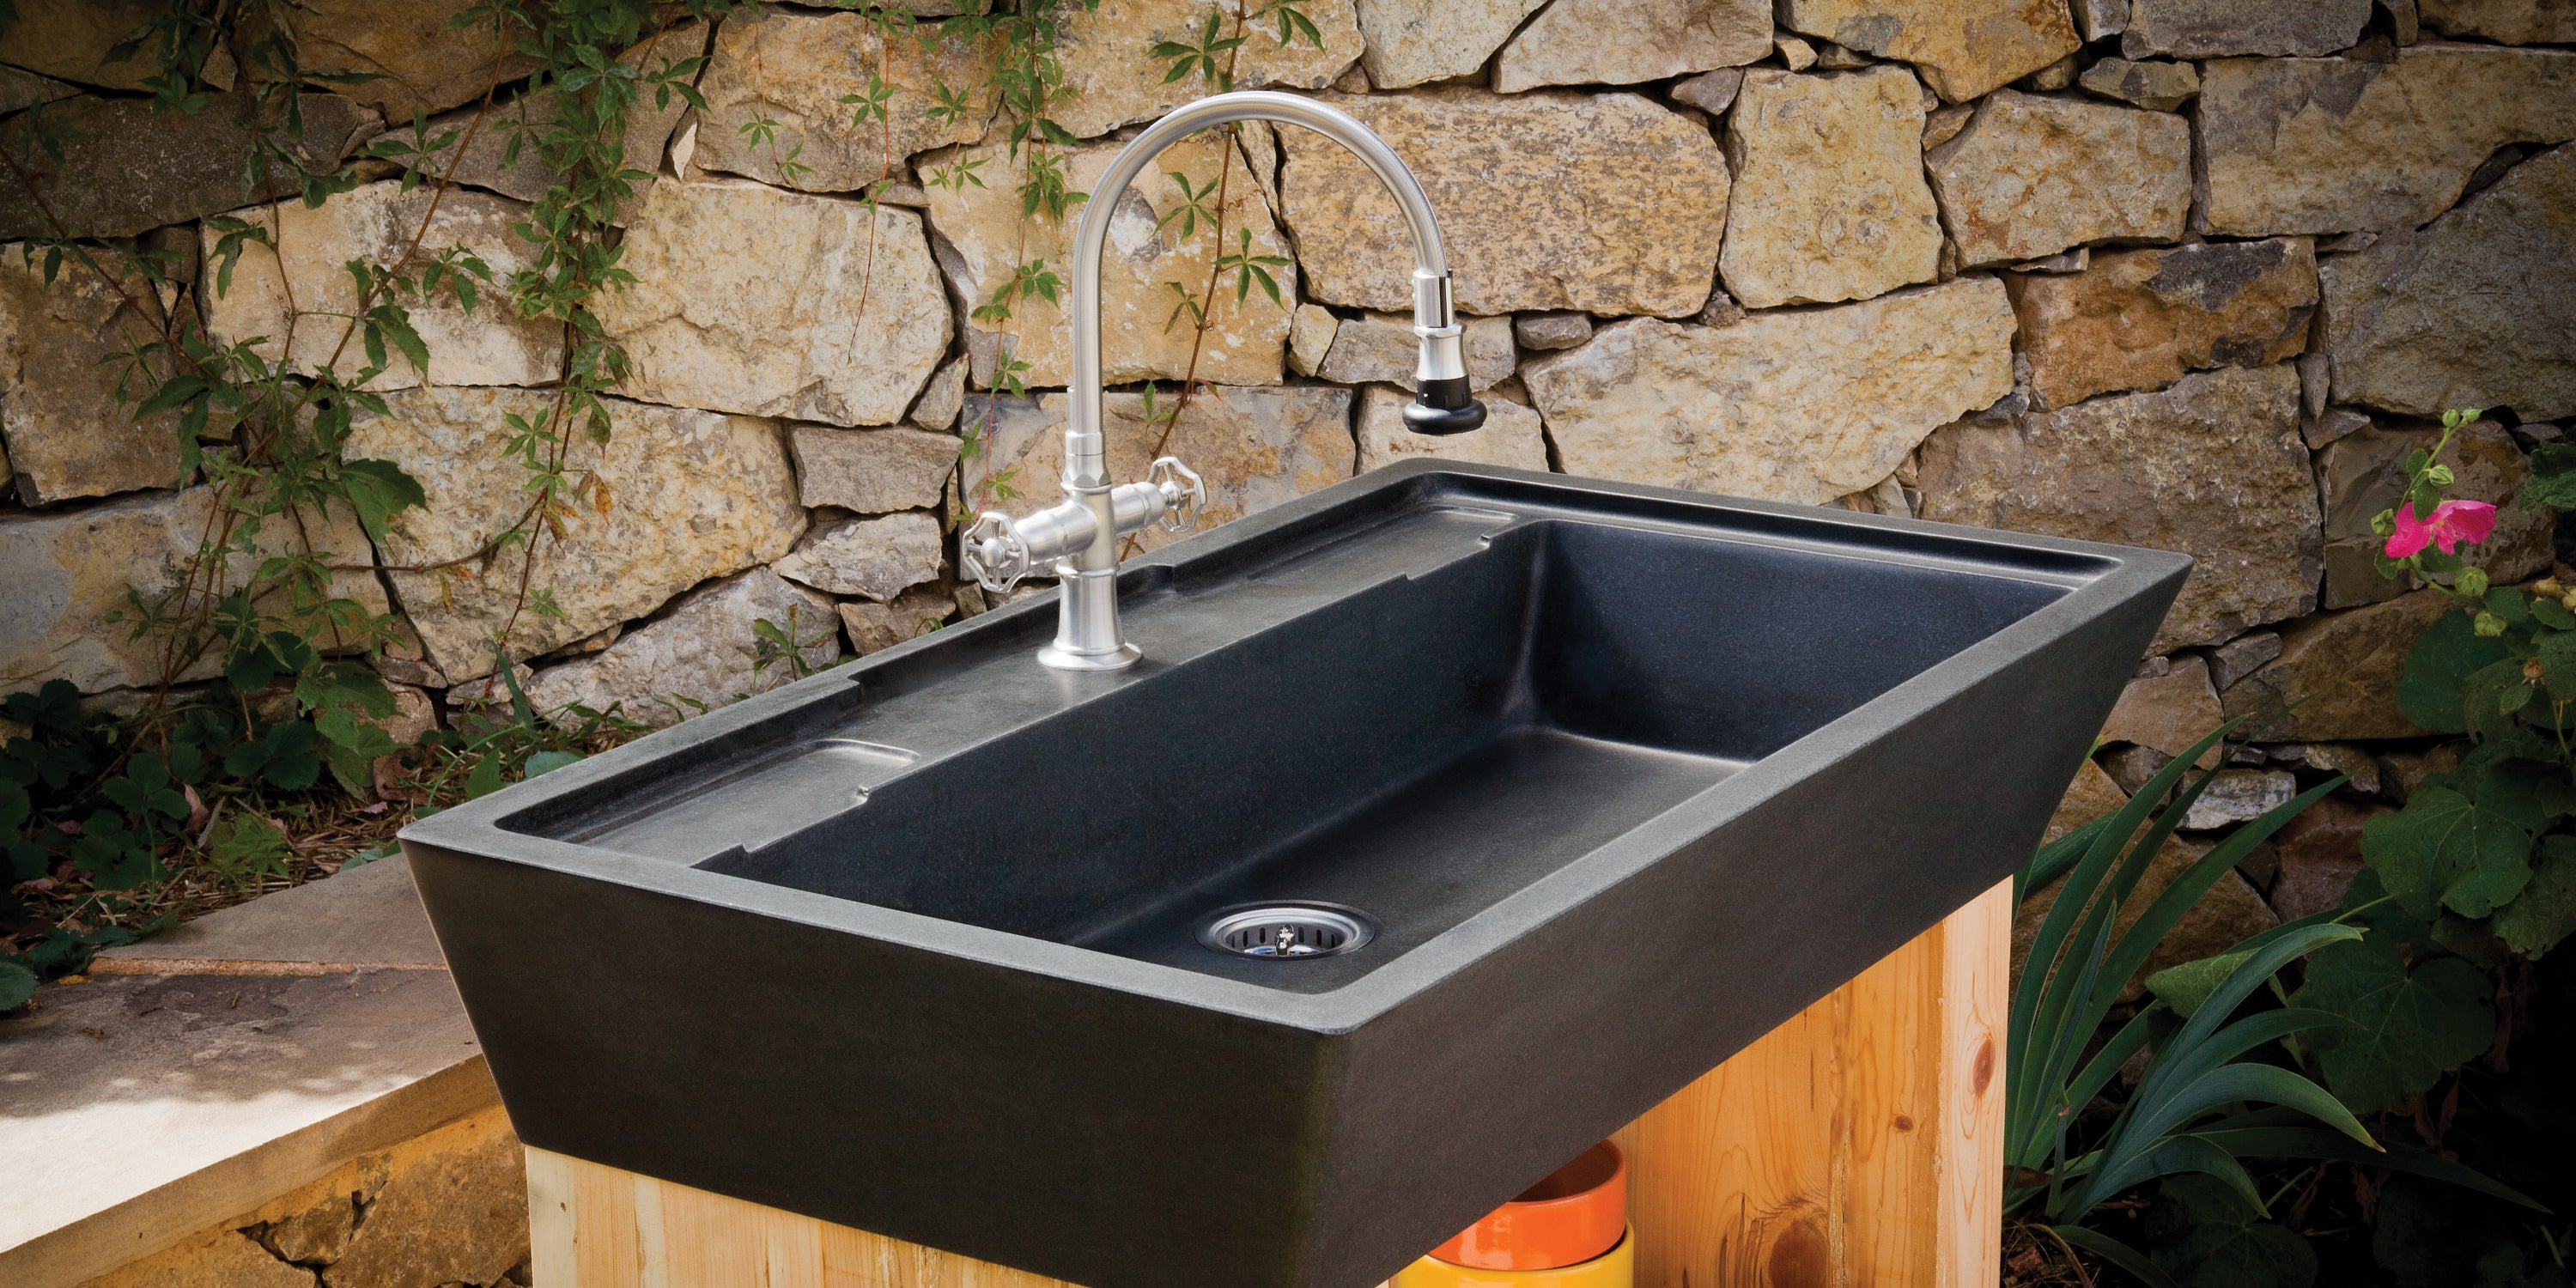 Vessel Kitchen Sink Stone kitchen sinks marble granite stone forest tagged kb kitchen sinks workwithnaturefo